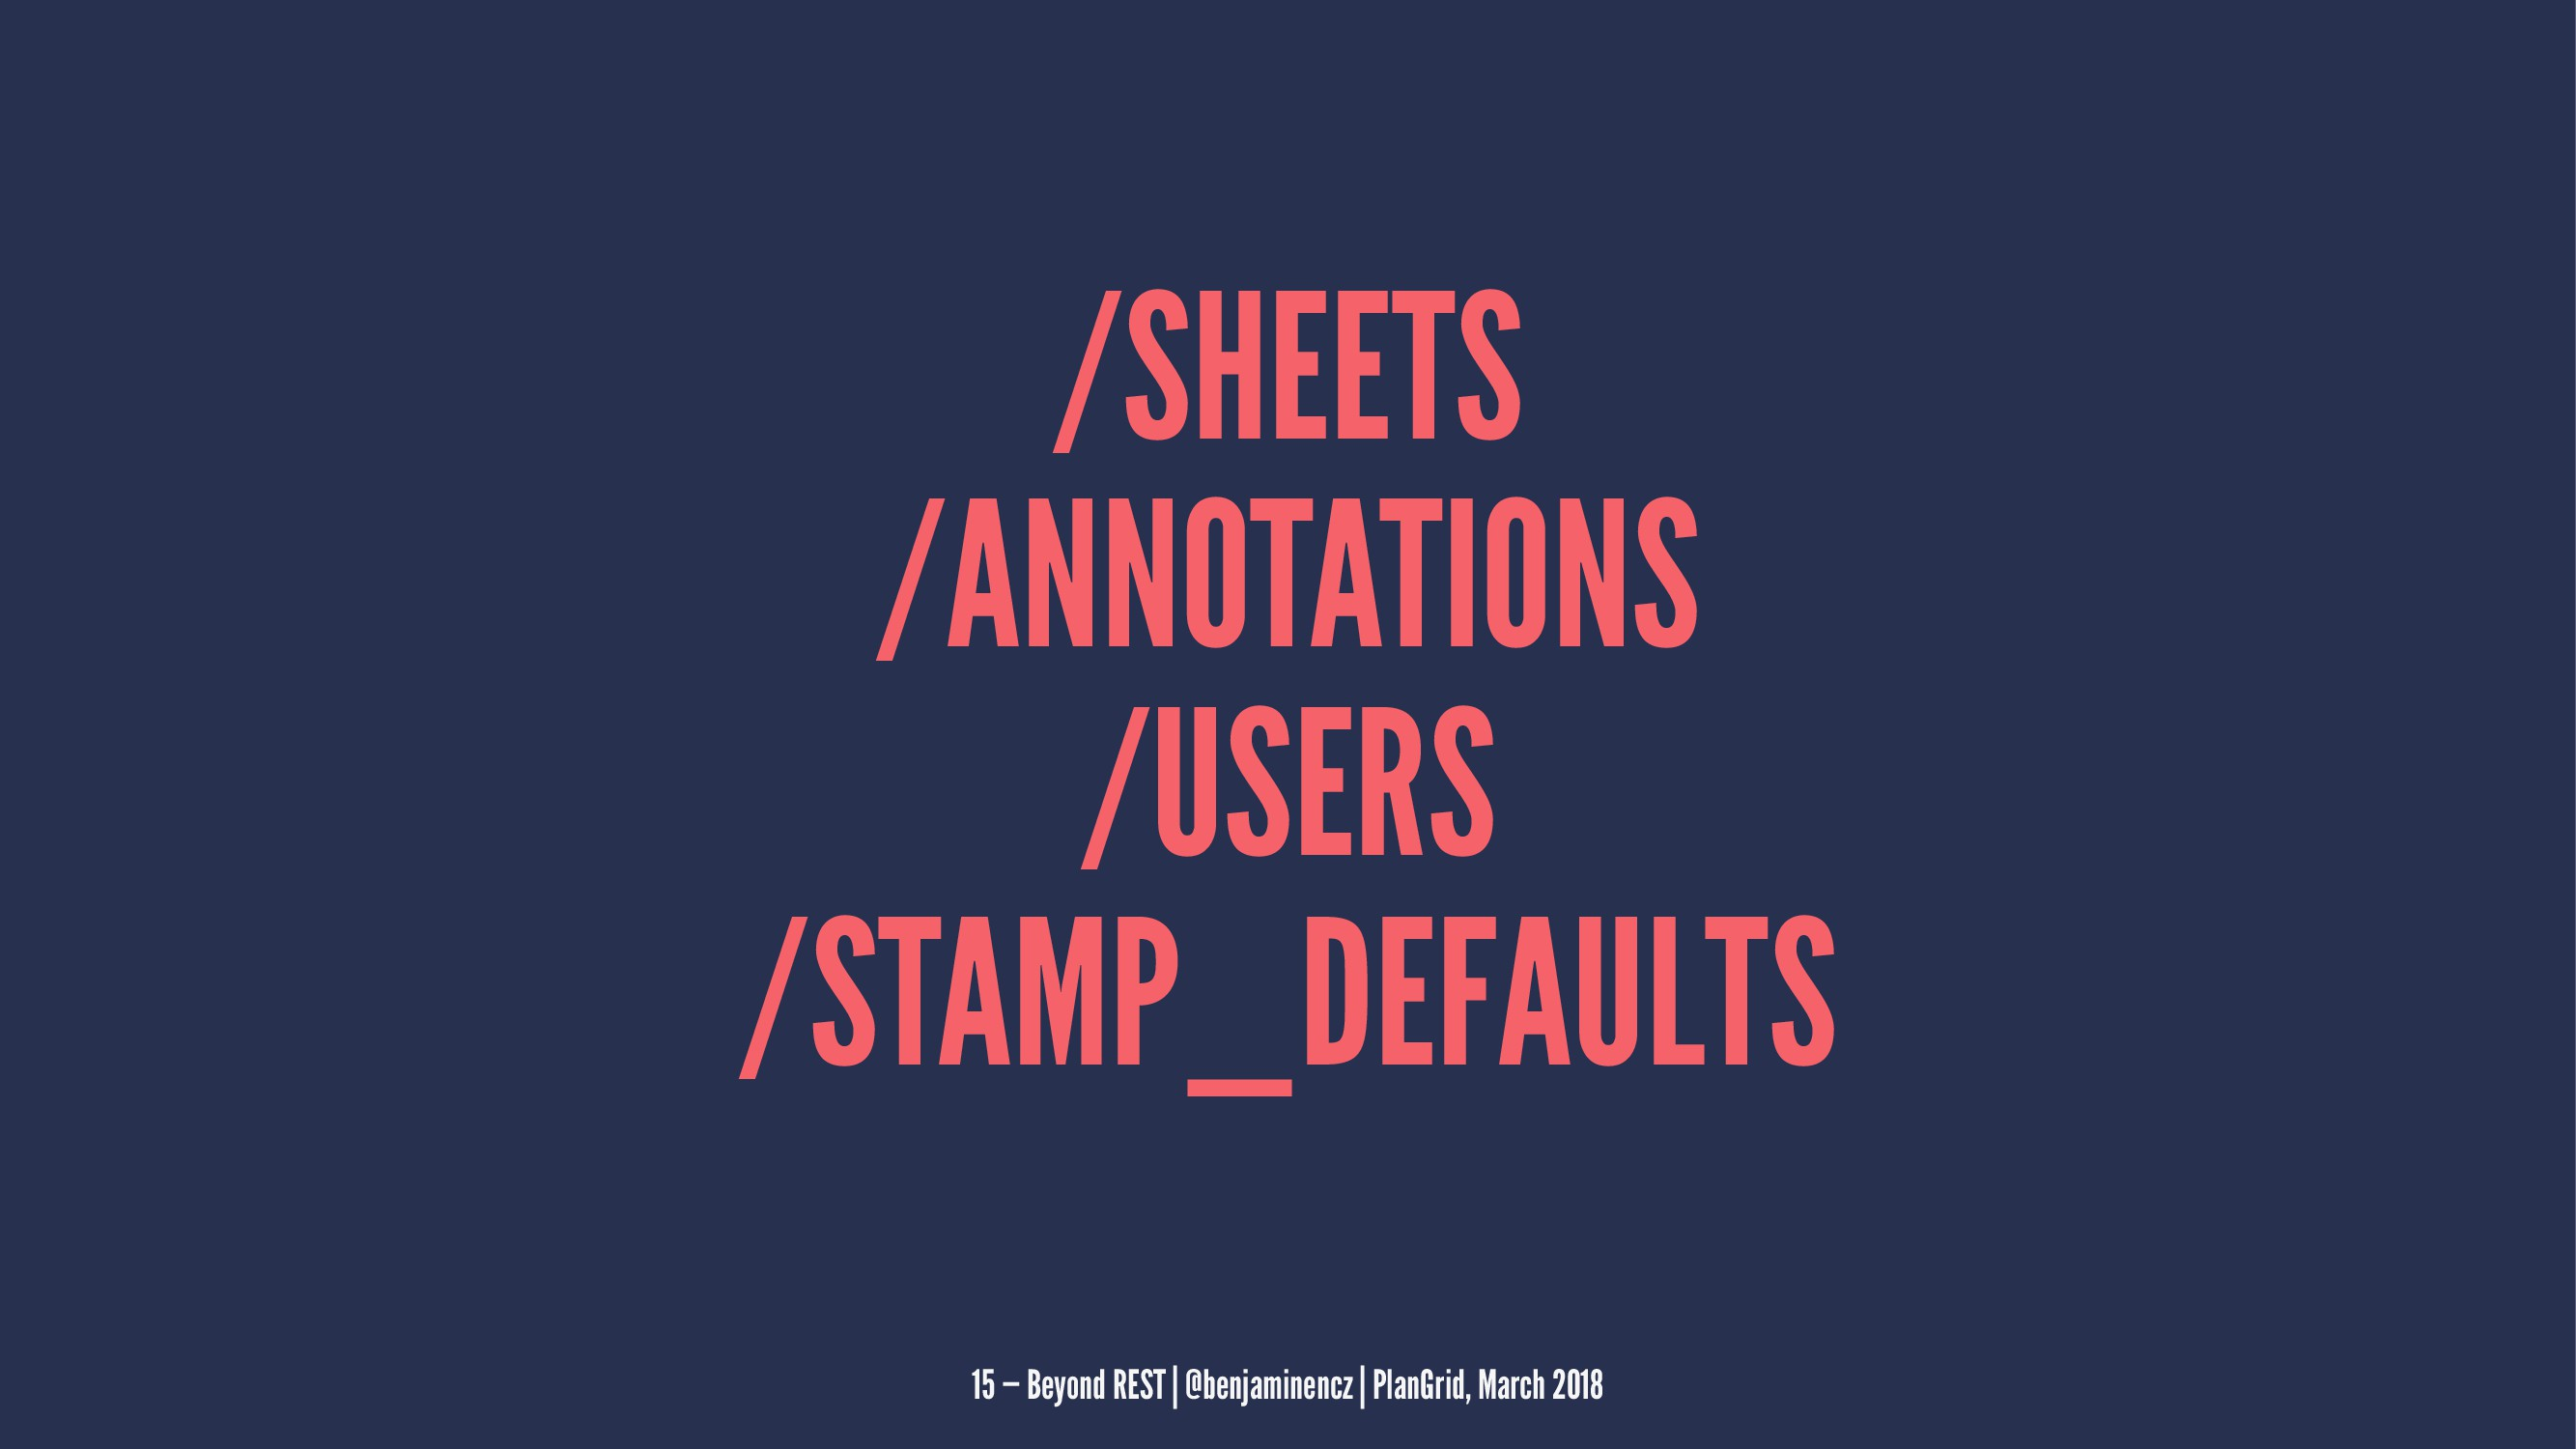 /SHEETS /ANNOTATIONS /USERS /STAMP_DEFAULTS 15 ...